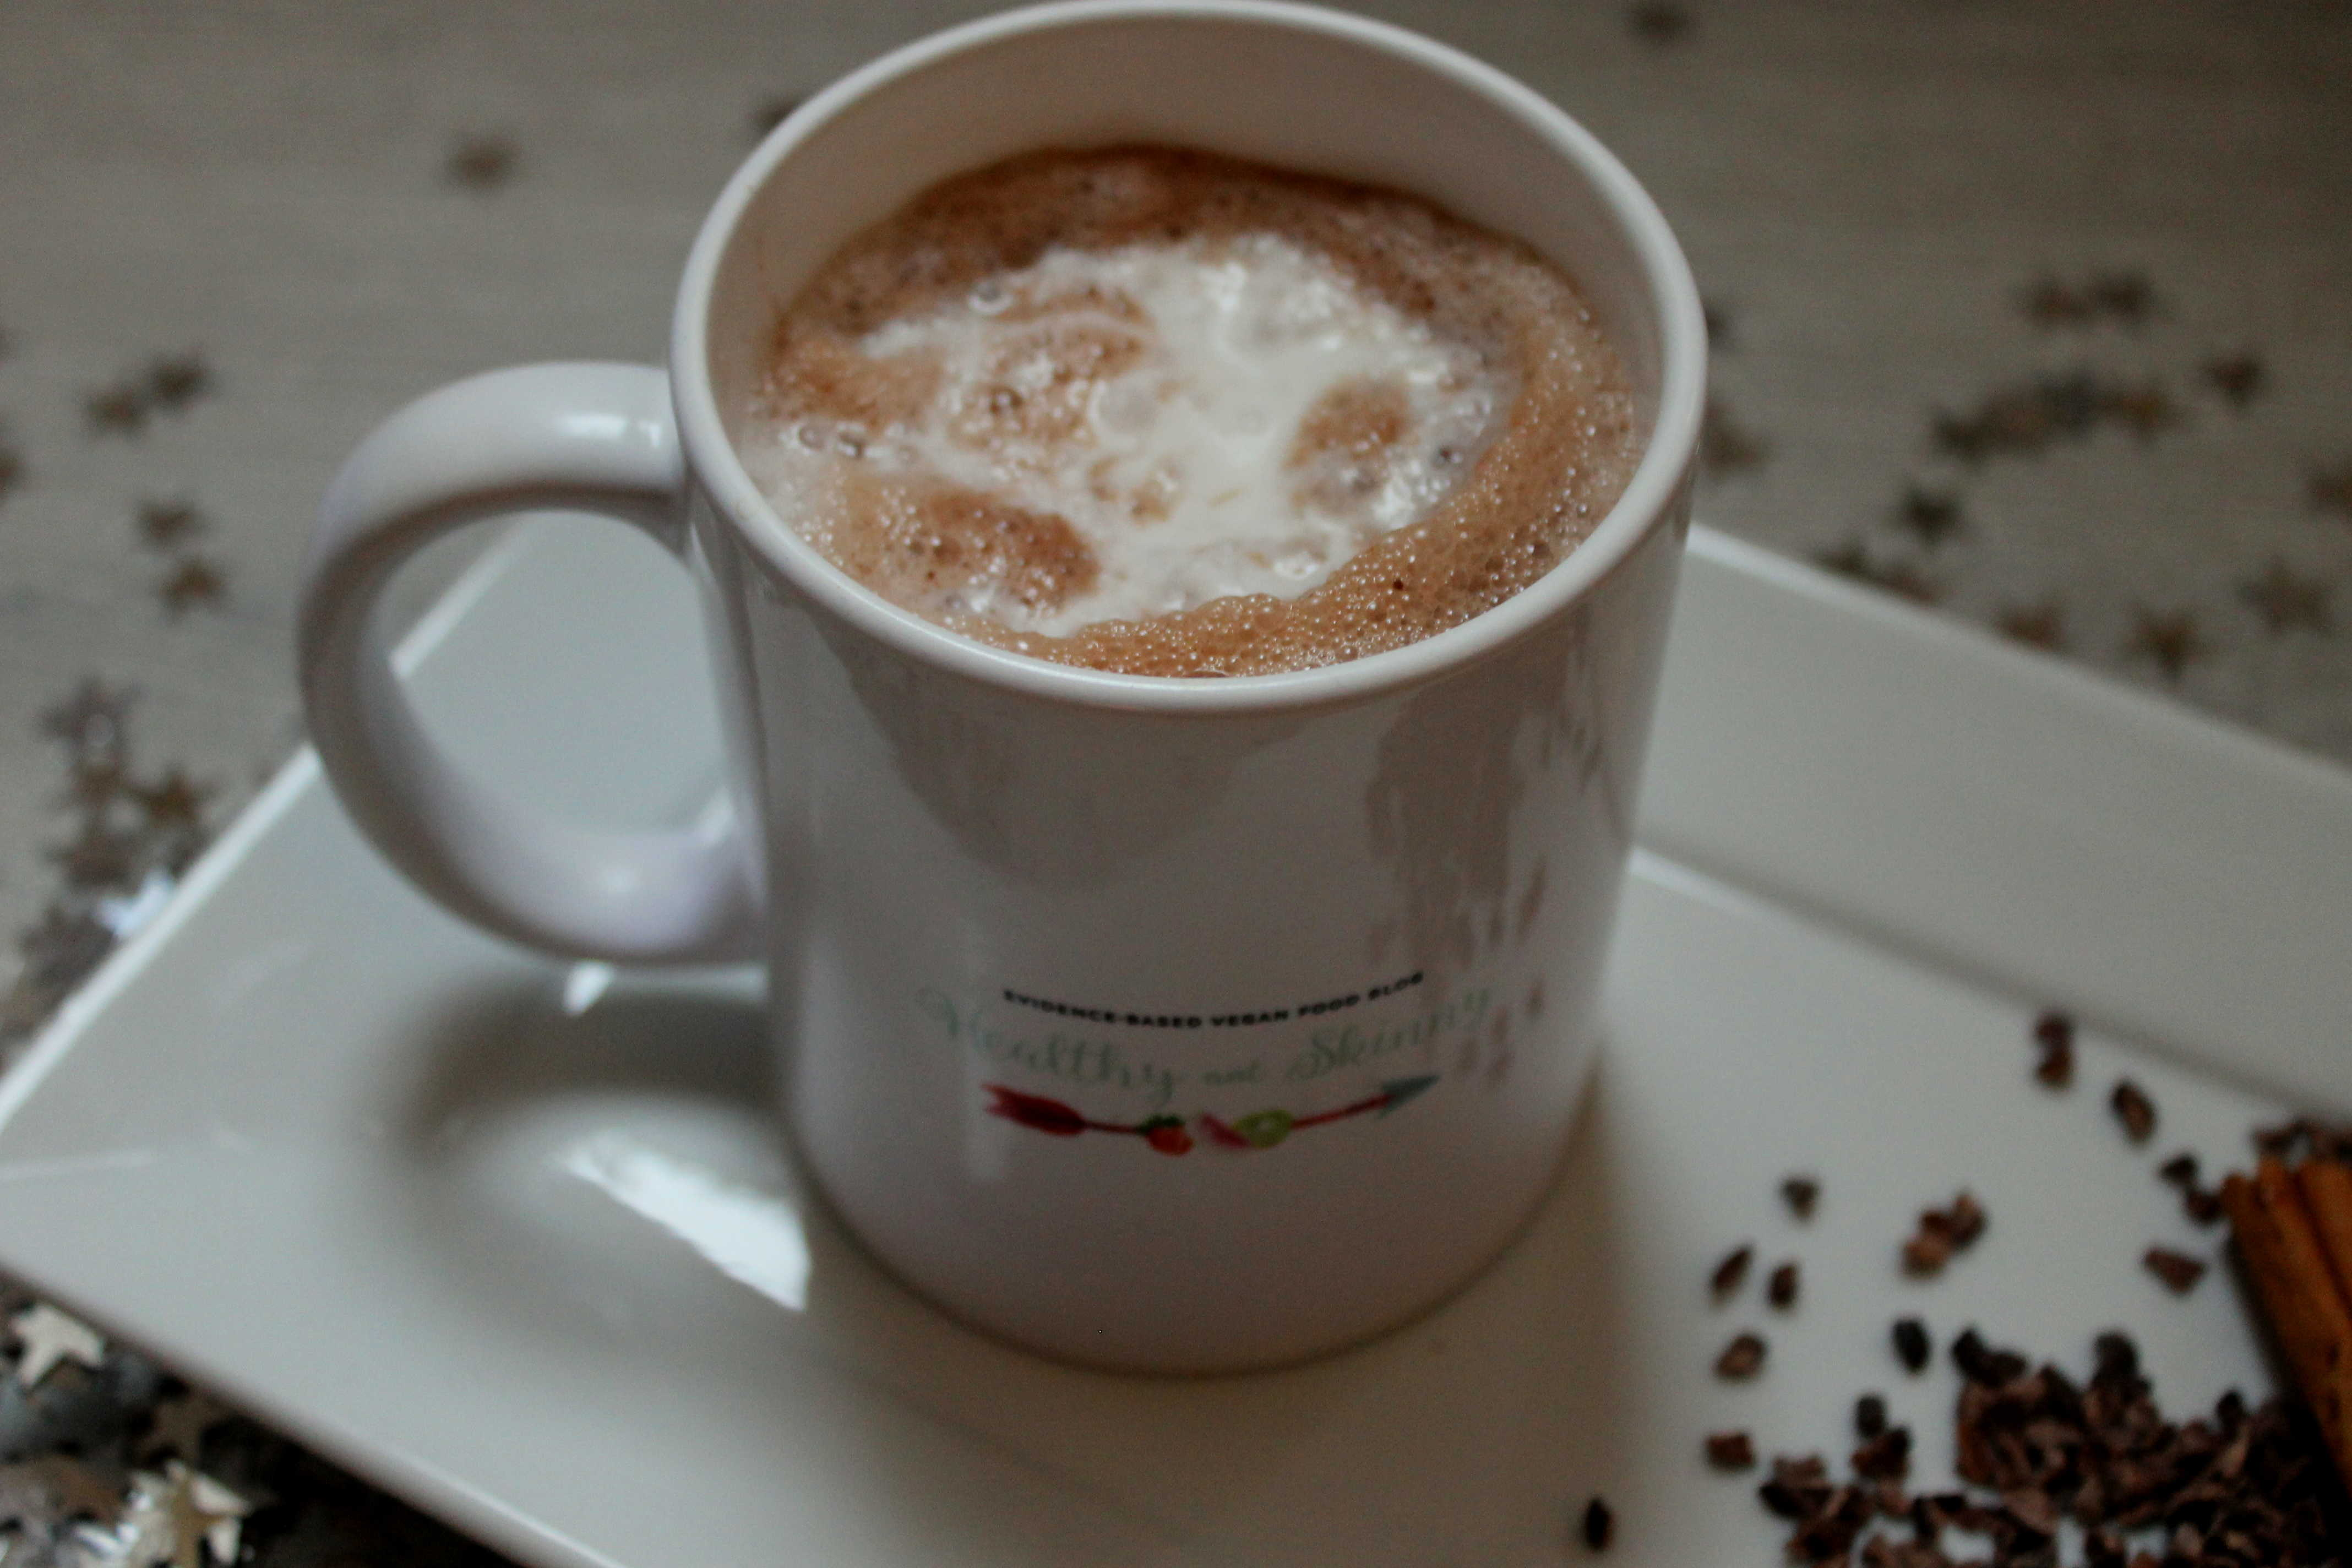 hot chocolate using cocoa powder